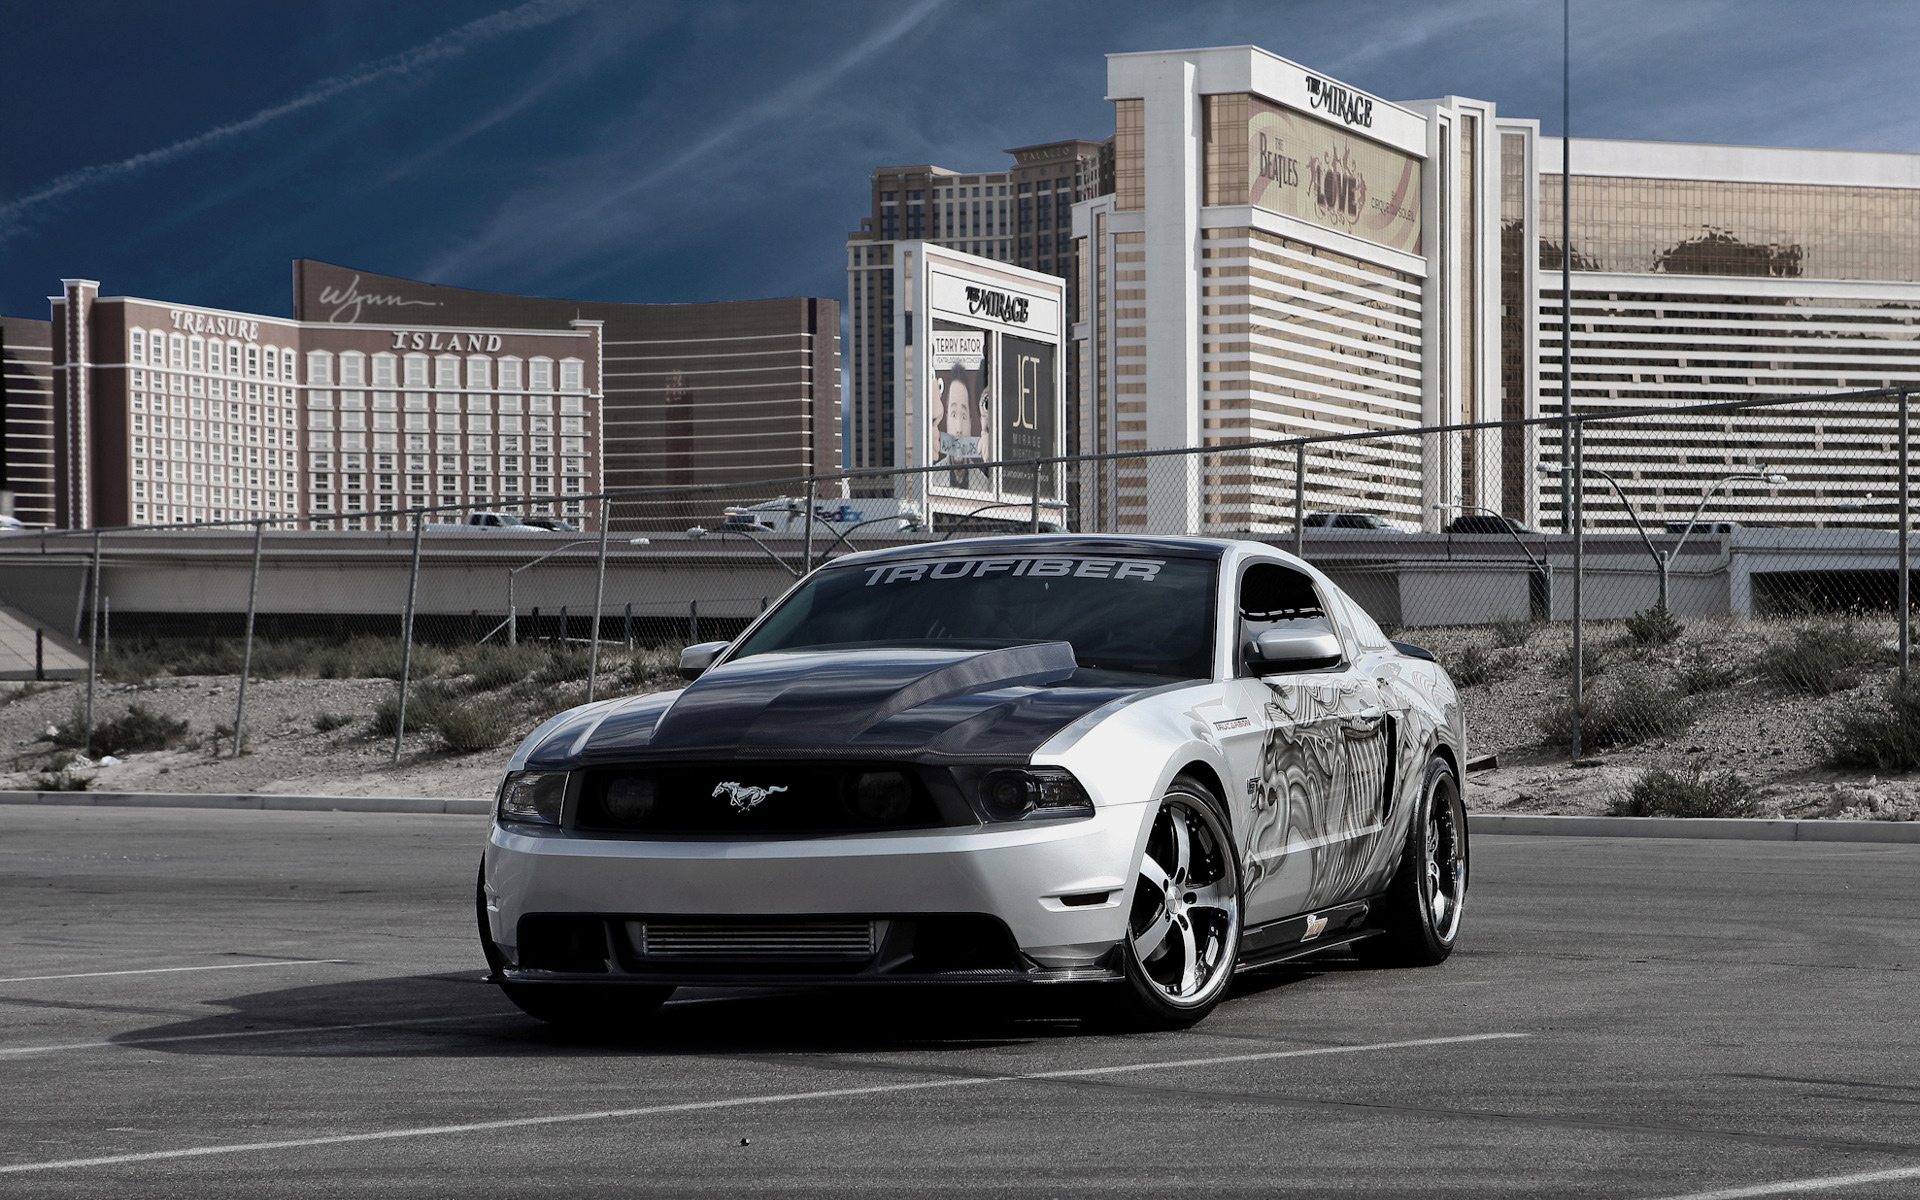 Photo Ford Mustang gray with airbrush on the side.